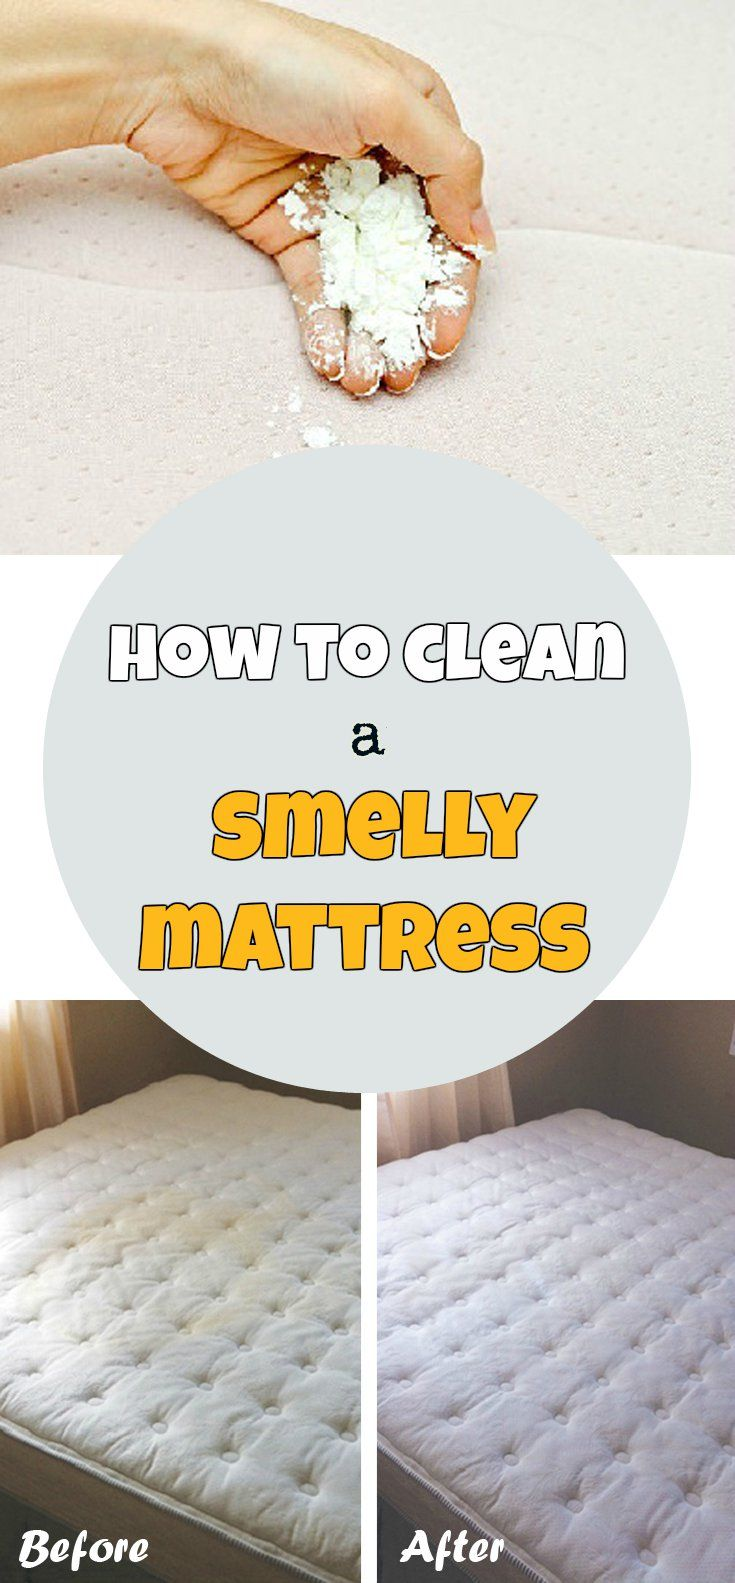 How to clean a smelly mattress